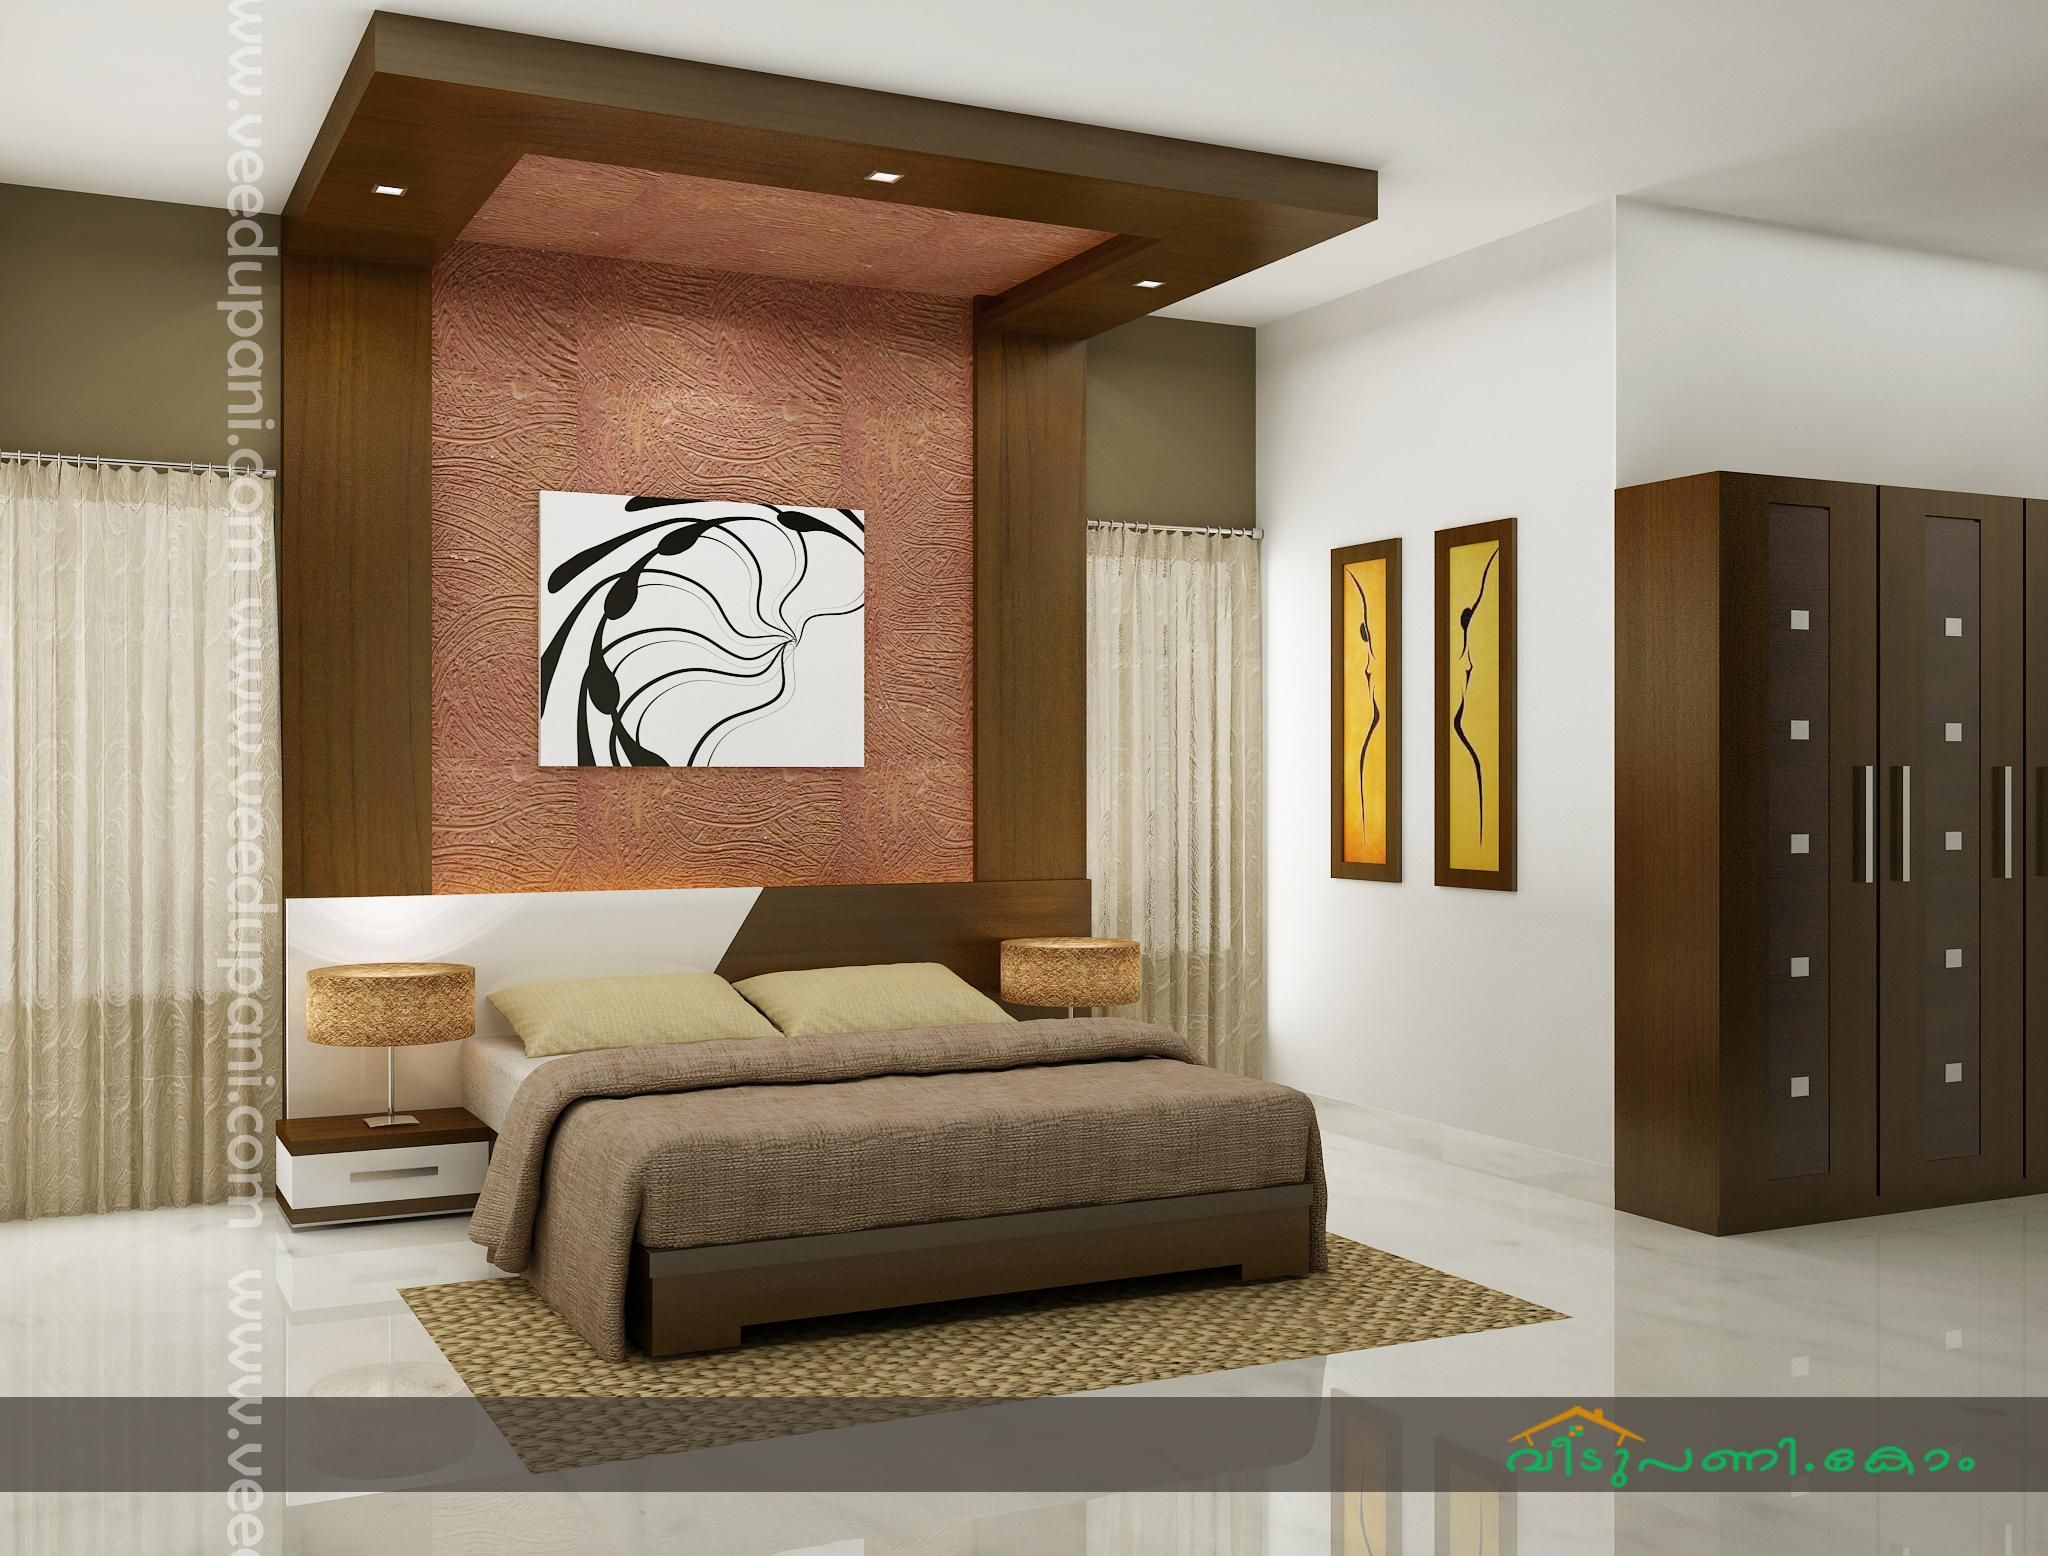 Interior Design Course In Kerala Bedroom And Bed Reviews